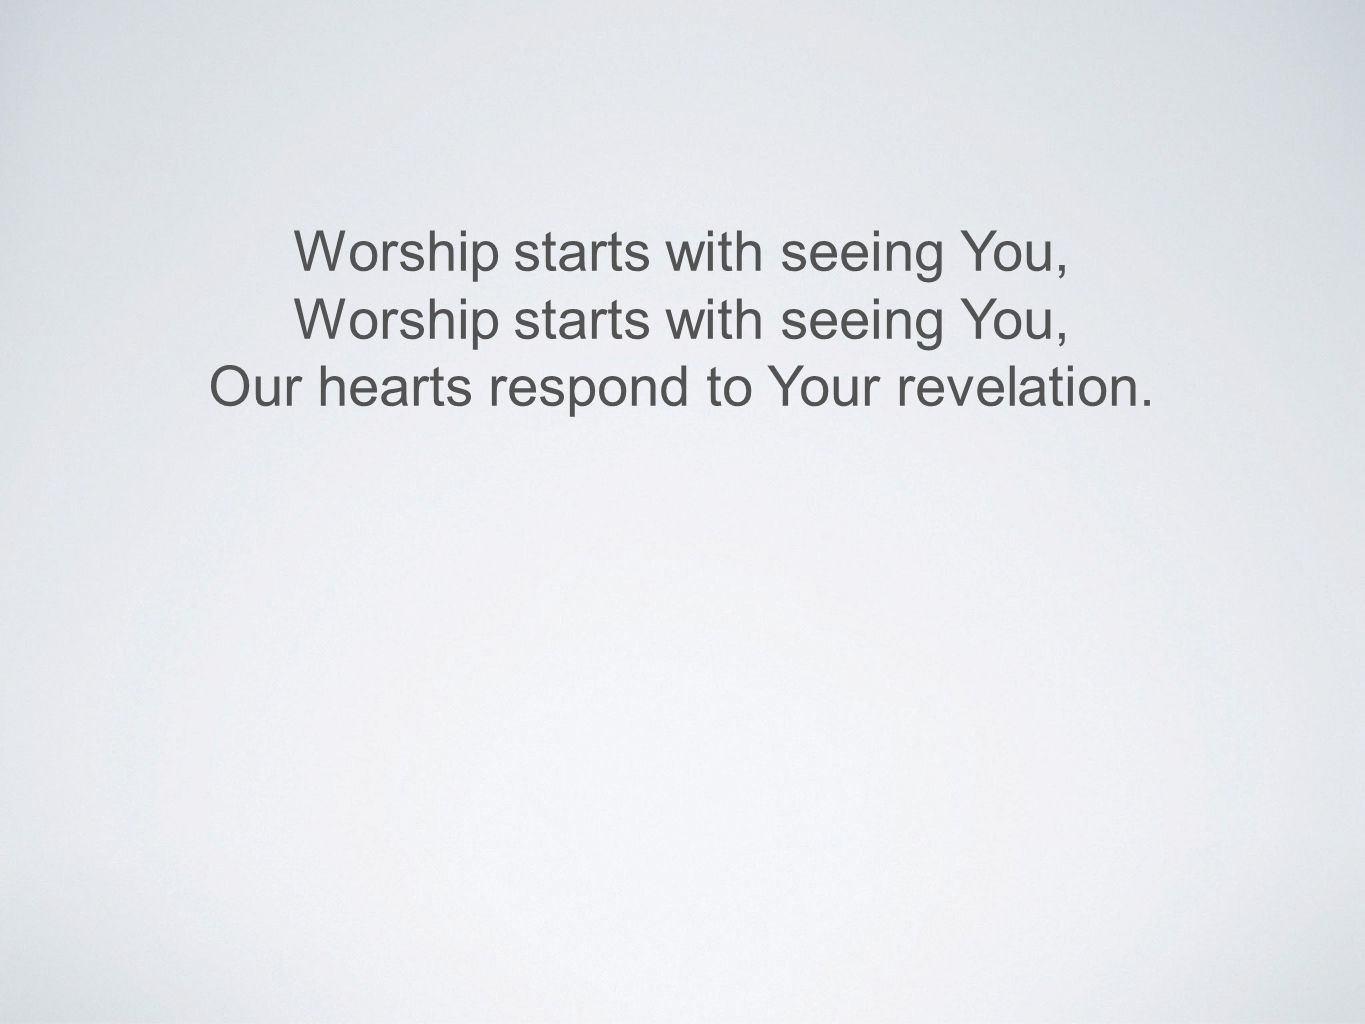 Worship starts with seeing You, Our hearts respond to Your revelation.